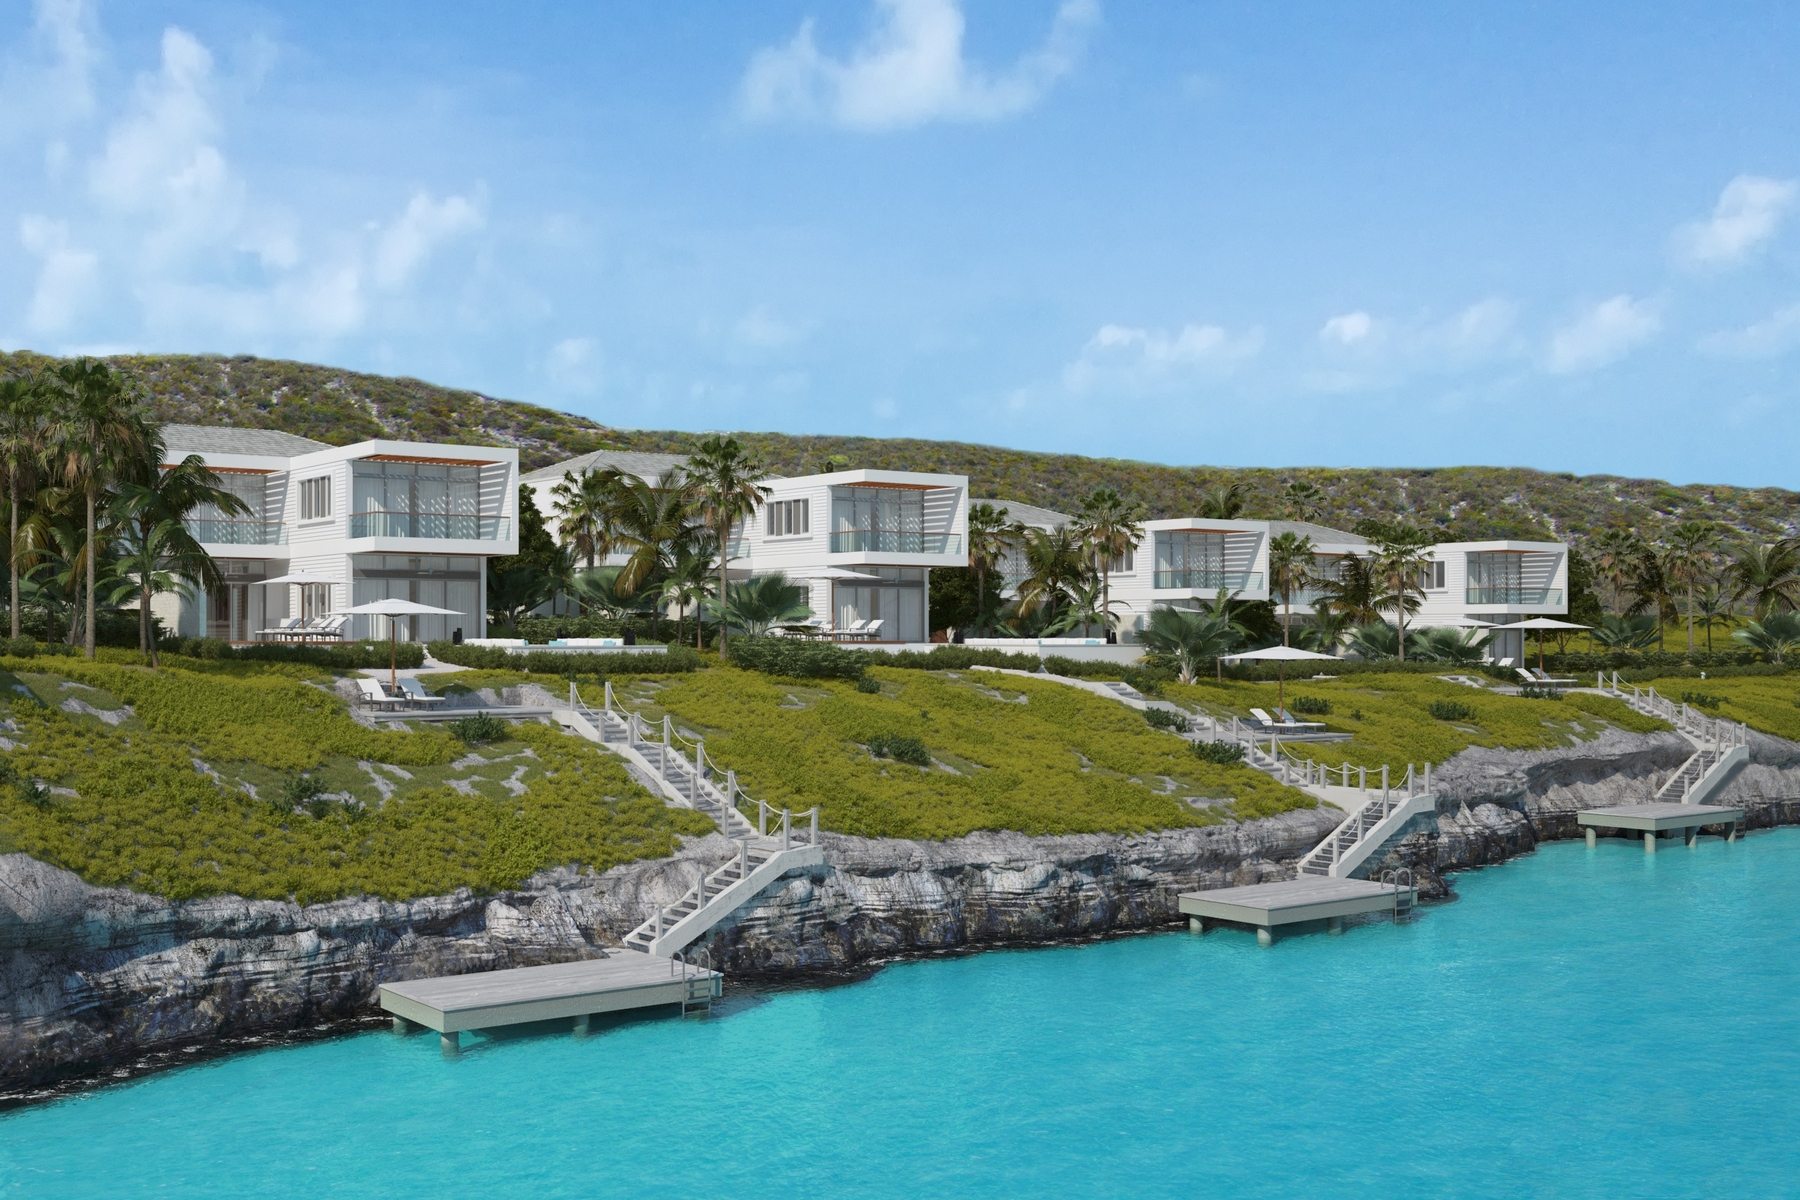 Single Family Home for Sale at Wymara Villa - 5 Bedroom Design Waterfront Turtle Tail, Providenciales TCI Turks And Caicos Islands